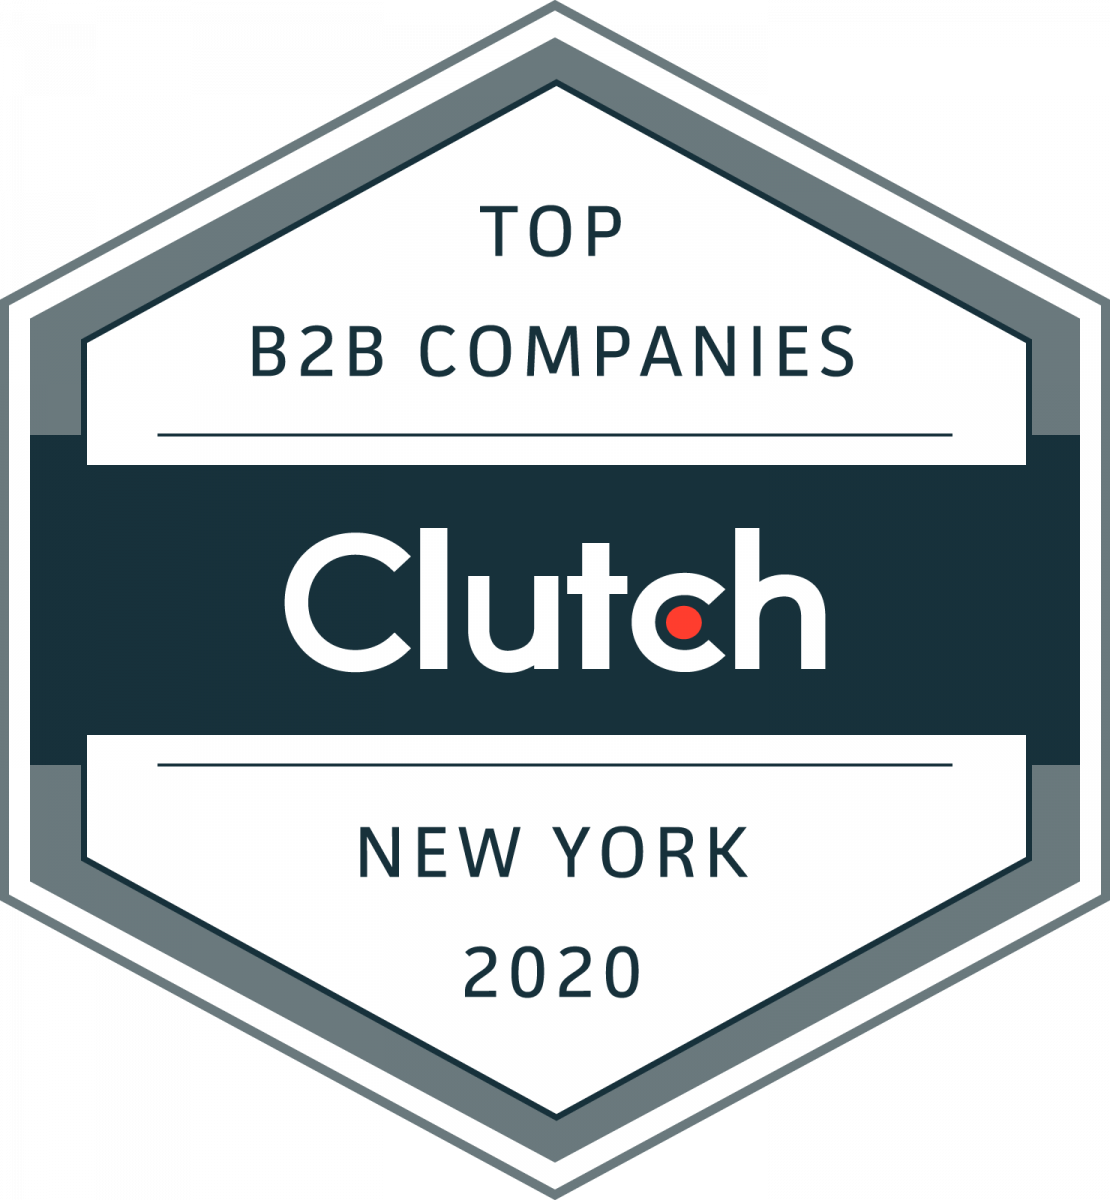 b2b companies in New York 2020